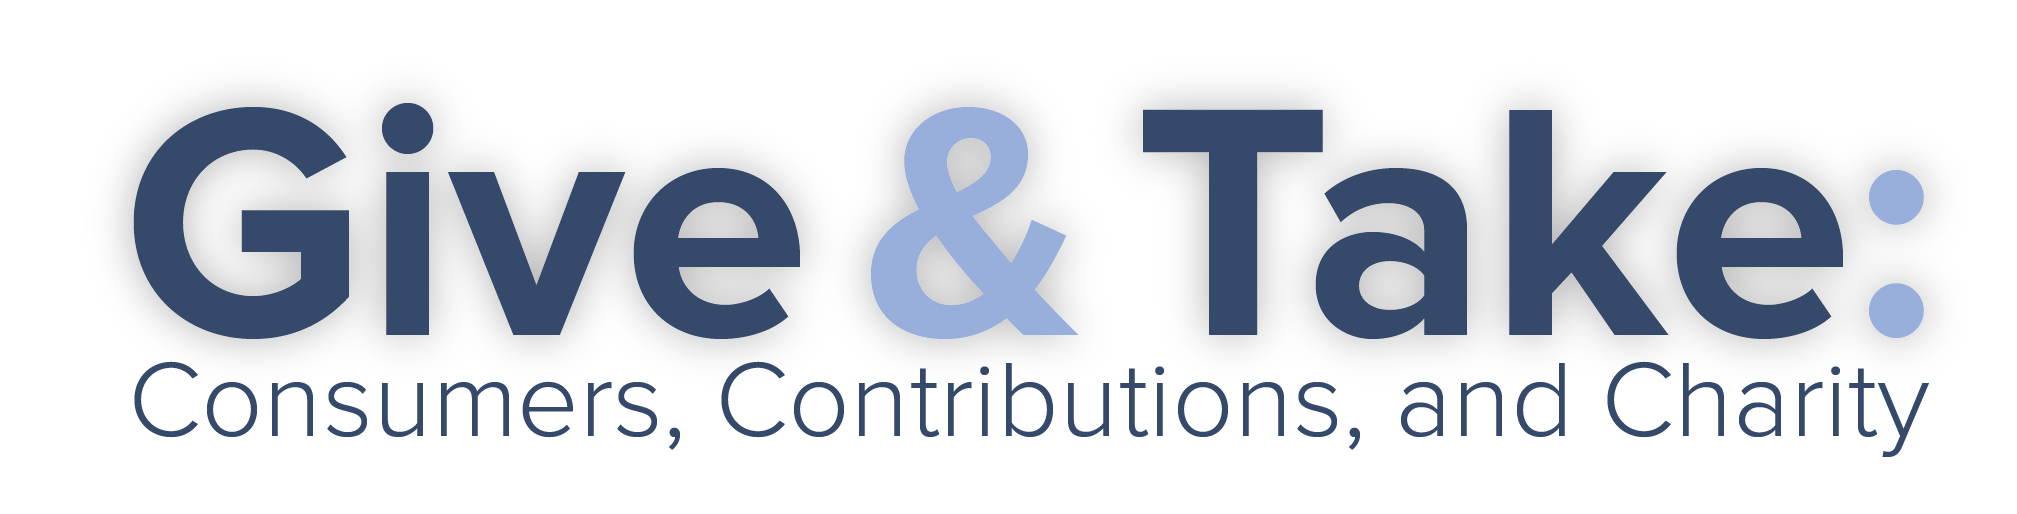 Give & Take: Consumers, Contributions, and Charity FTC & NASCO Host a Conference Exploring Consumer Protection Issues and Charitable Solicitations